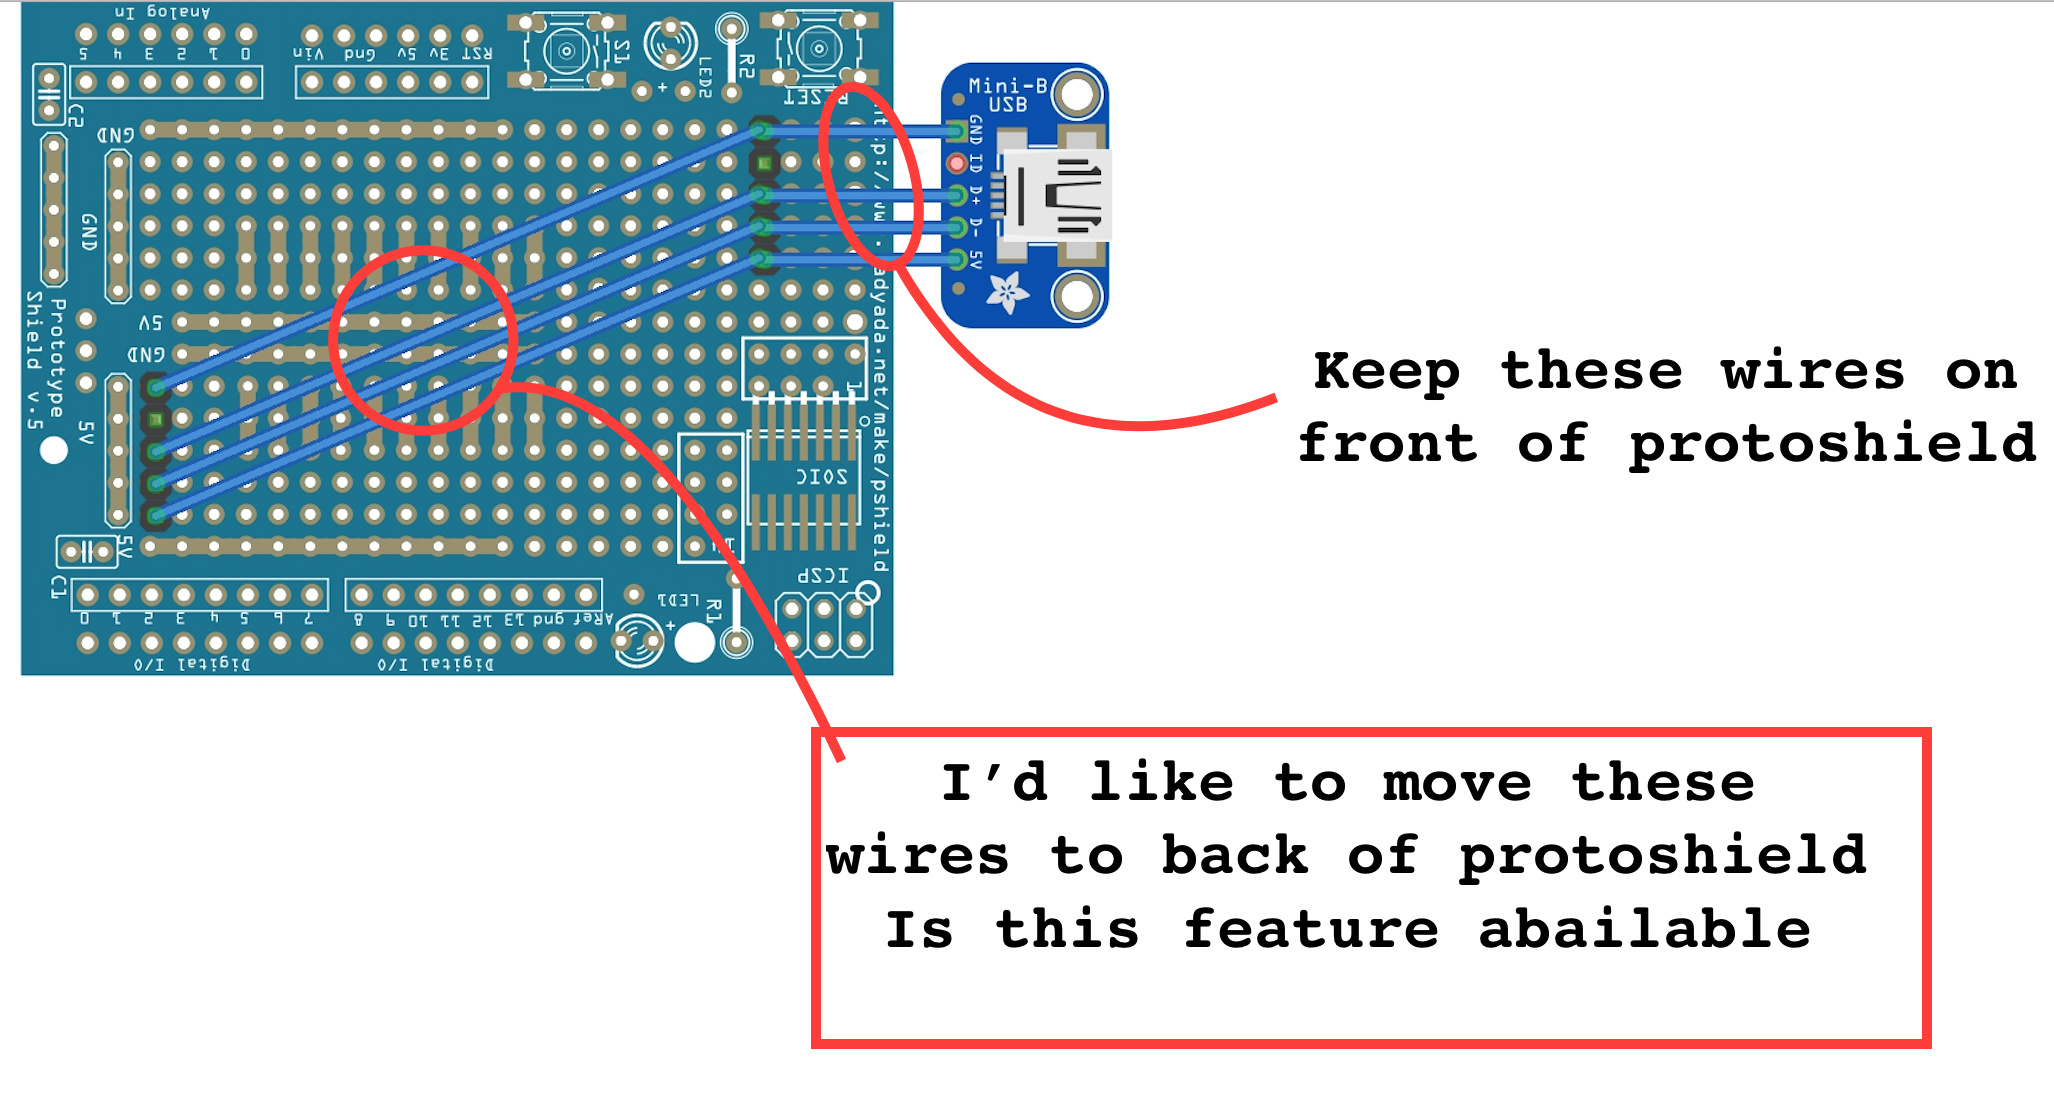 Move Wires To Back Of Protoshield - Beginners